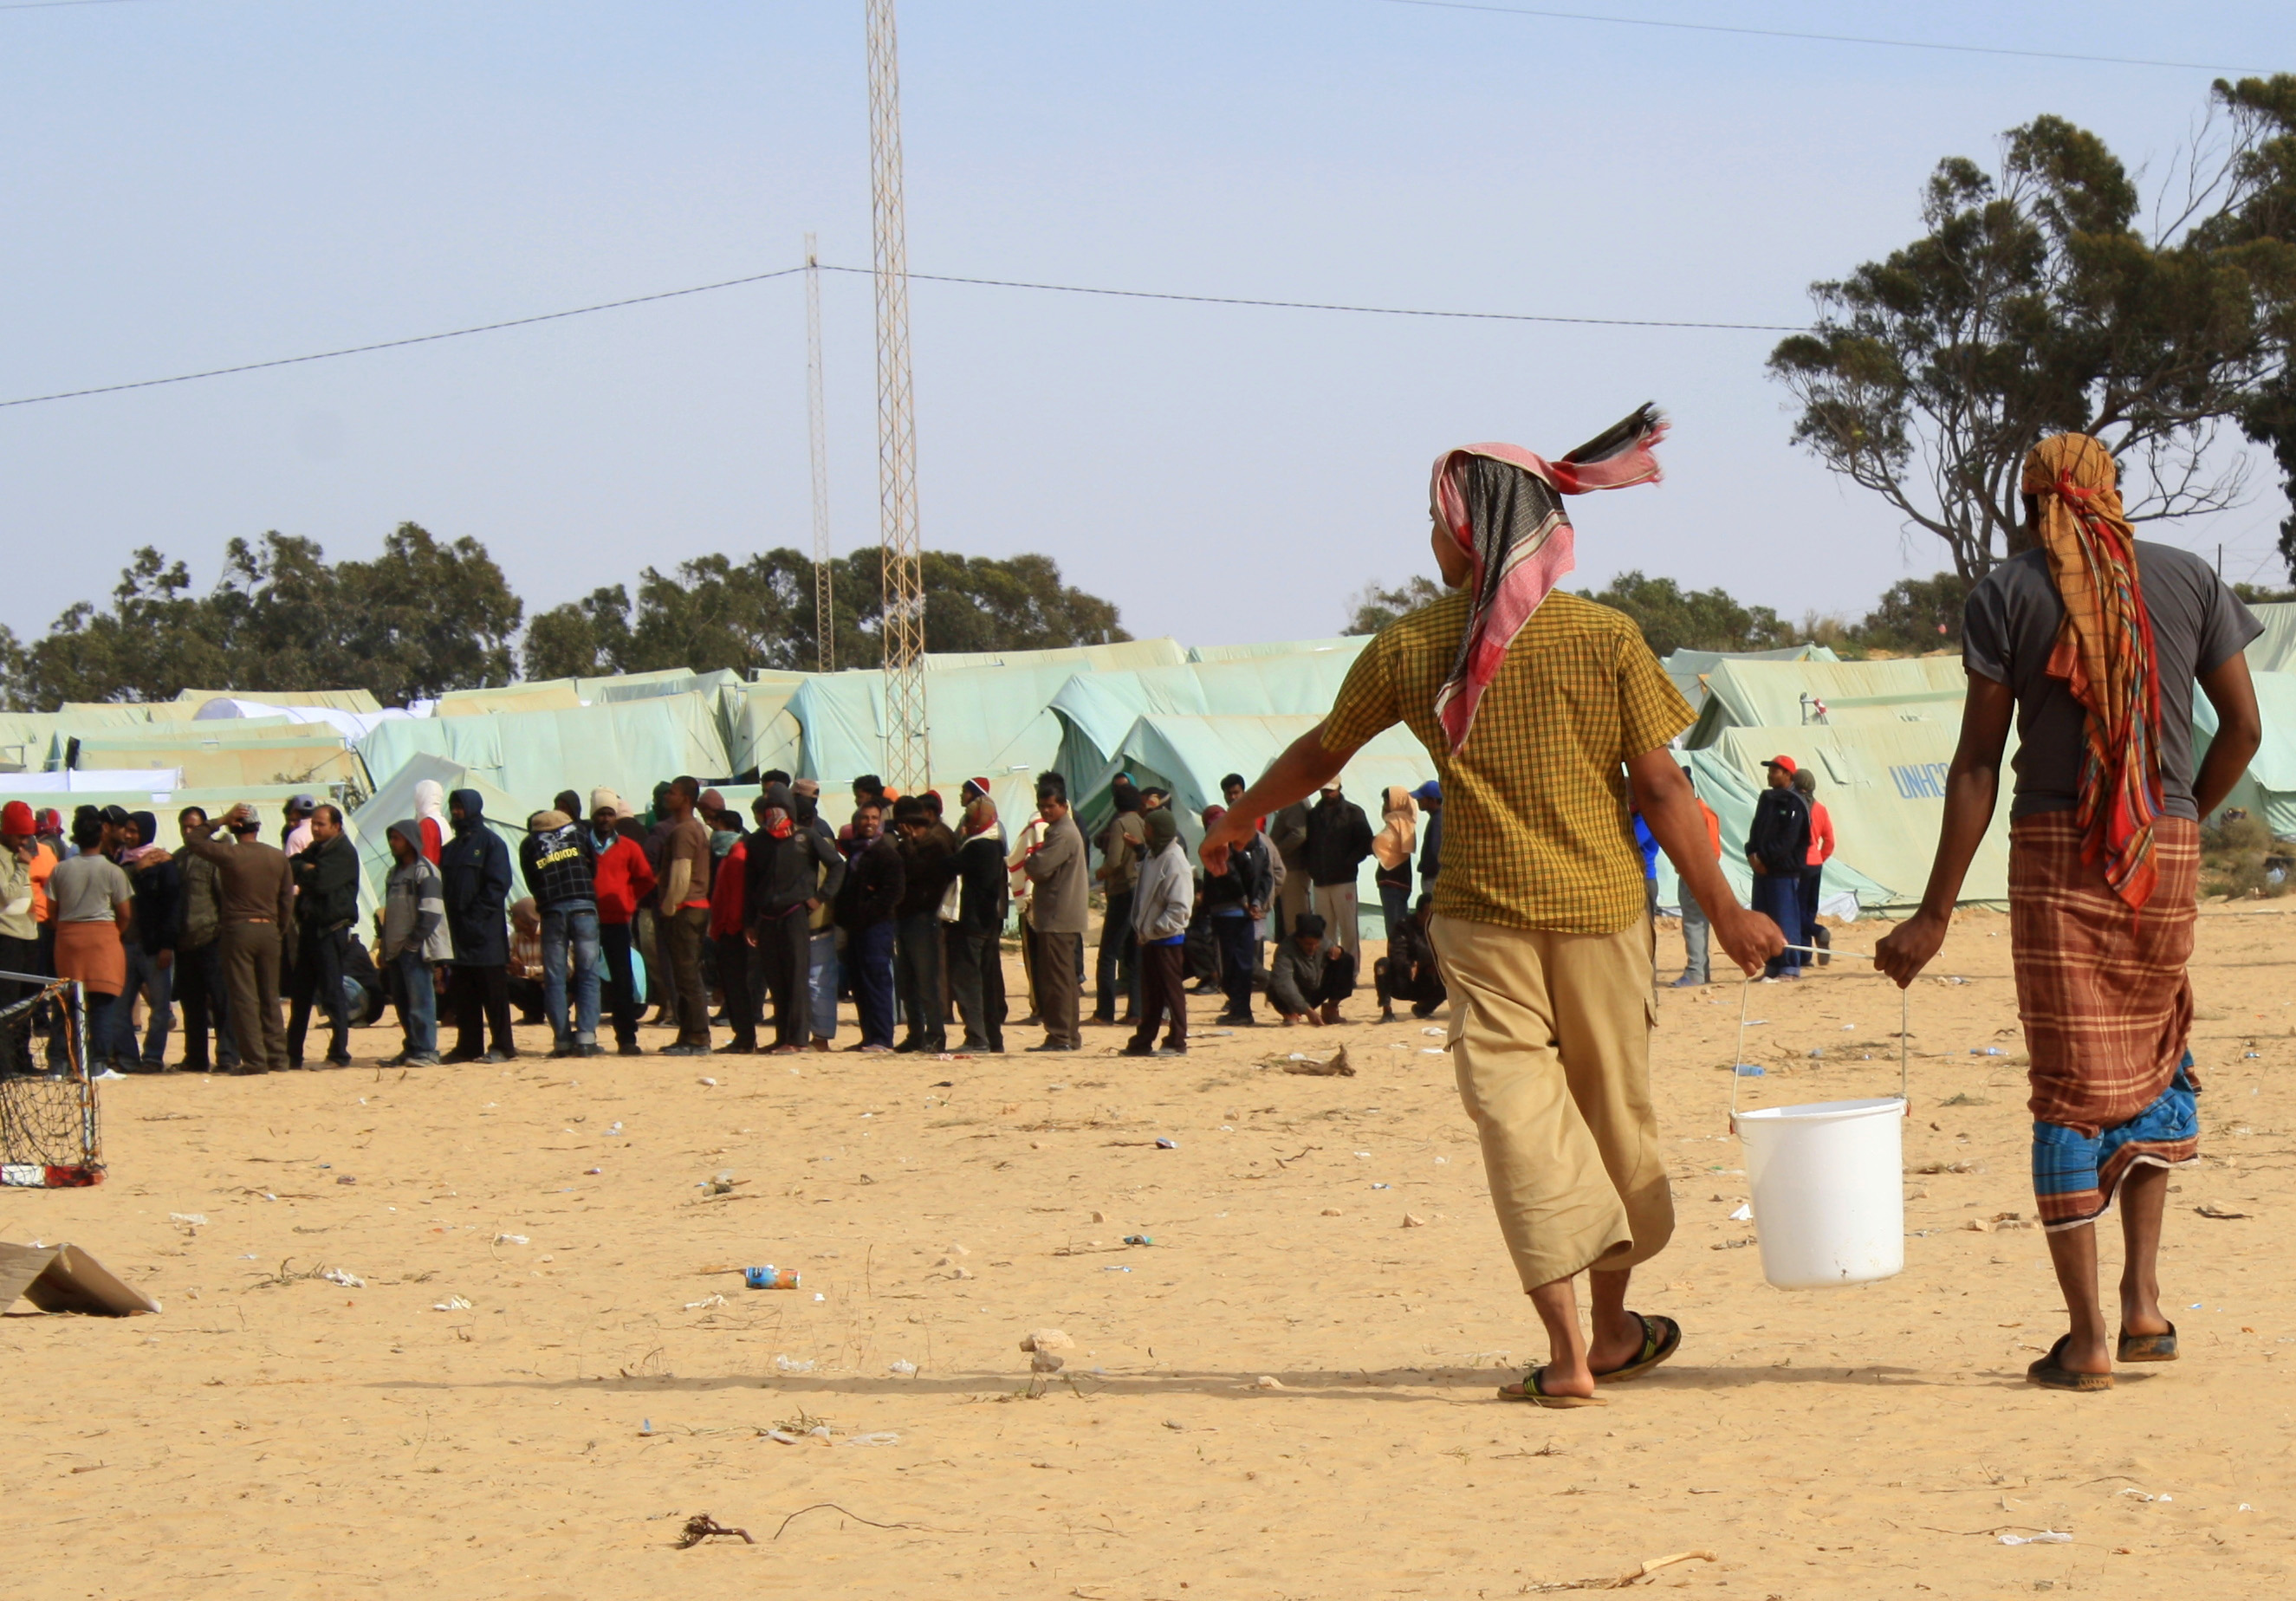 Men carry a bucket of water at Choucha camp whilst others queue for assistance in the background